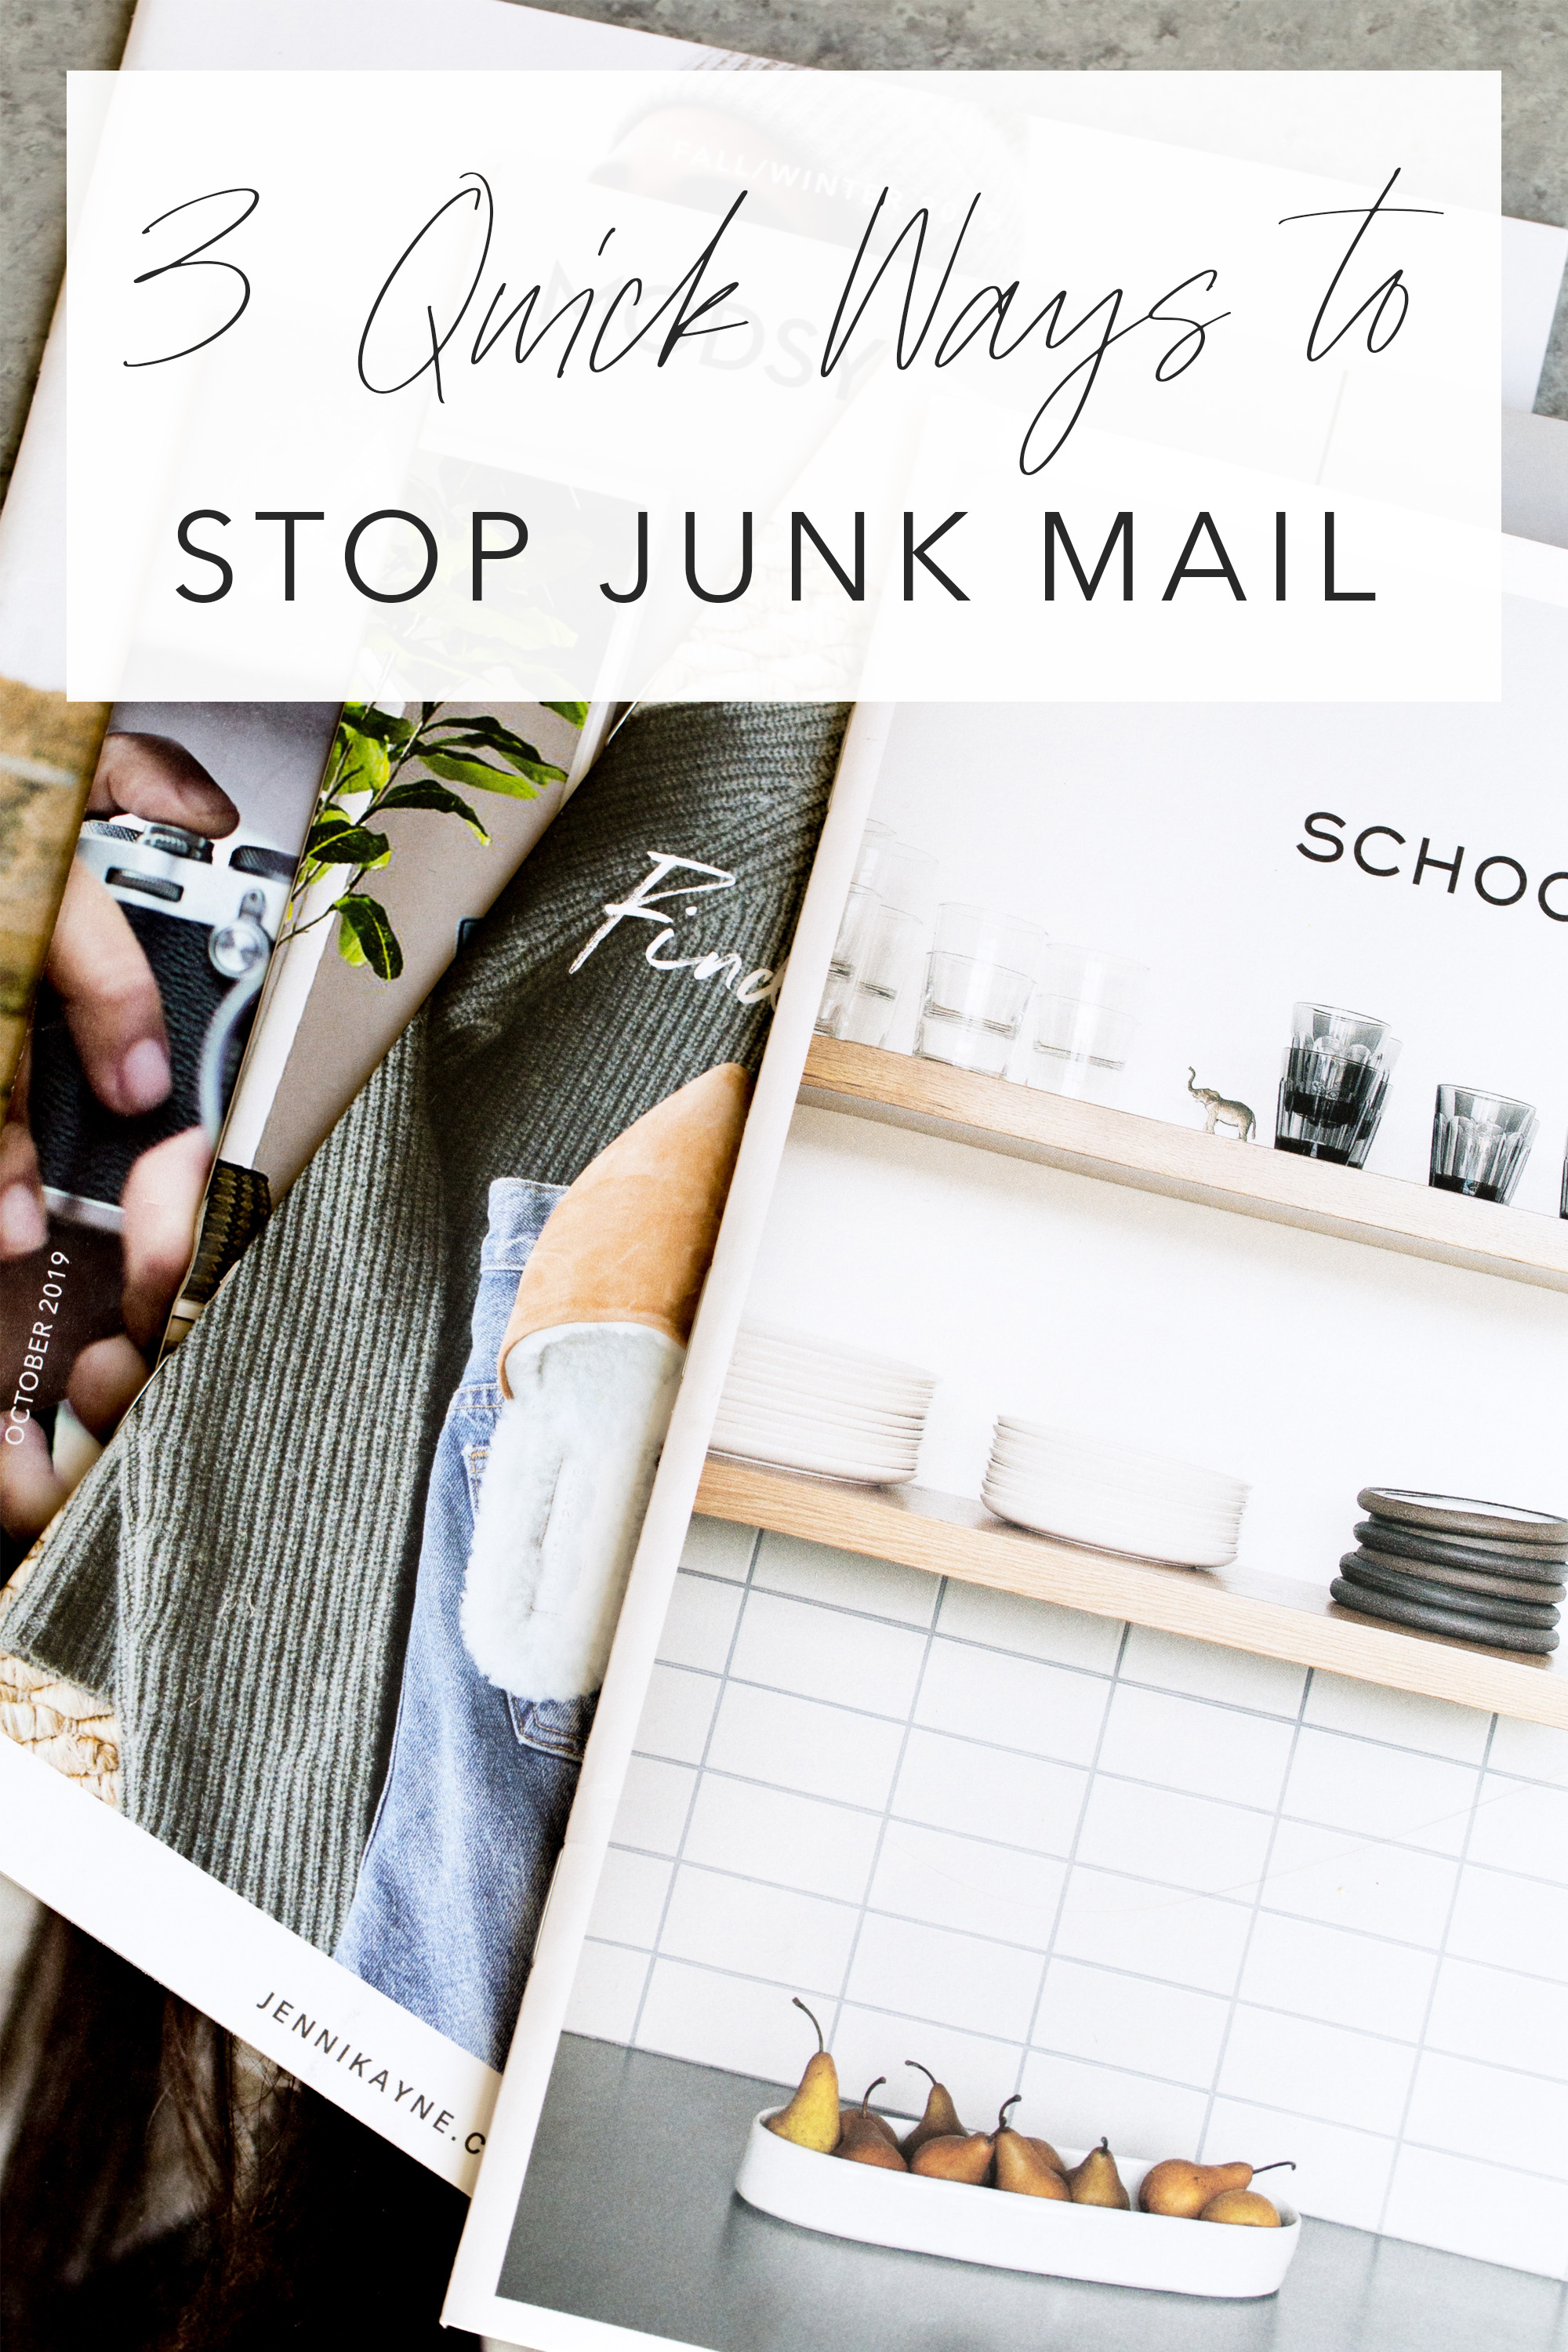 how to stop junk mail image with catalogs and text overlay